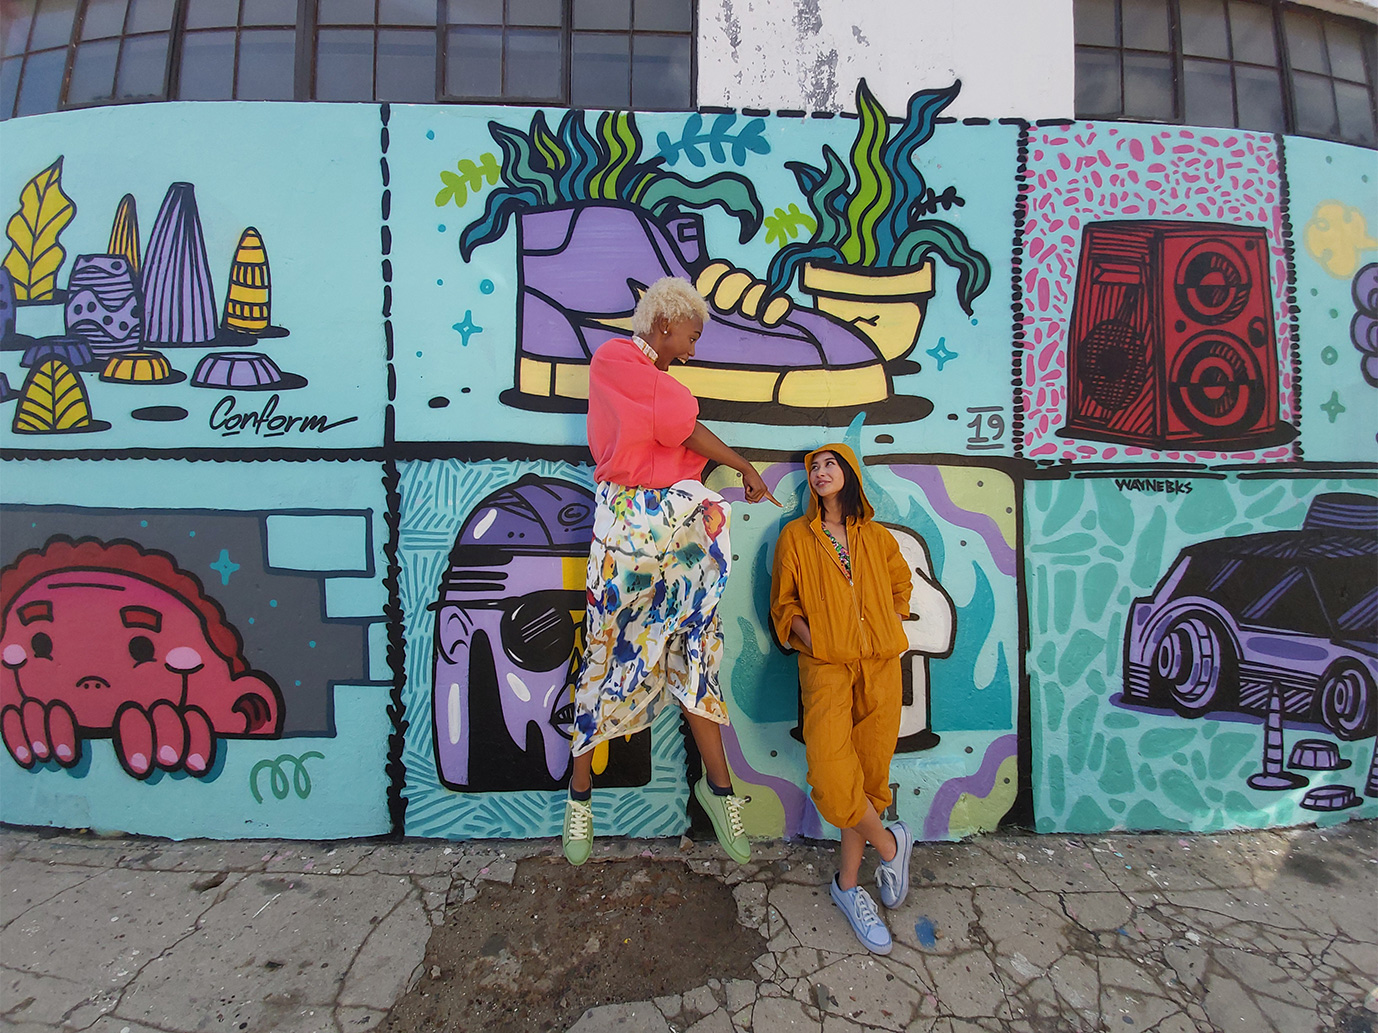 Photo captured by Galaxy A80's Ultra Wide Camera of the two women and graffiti wall in full view.